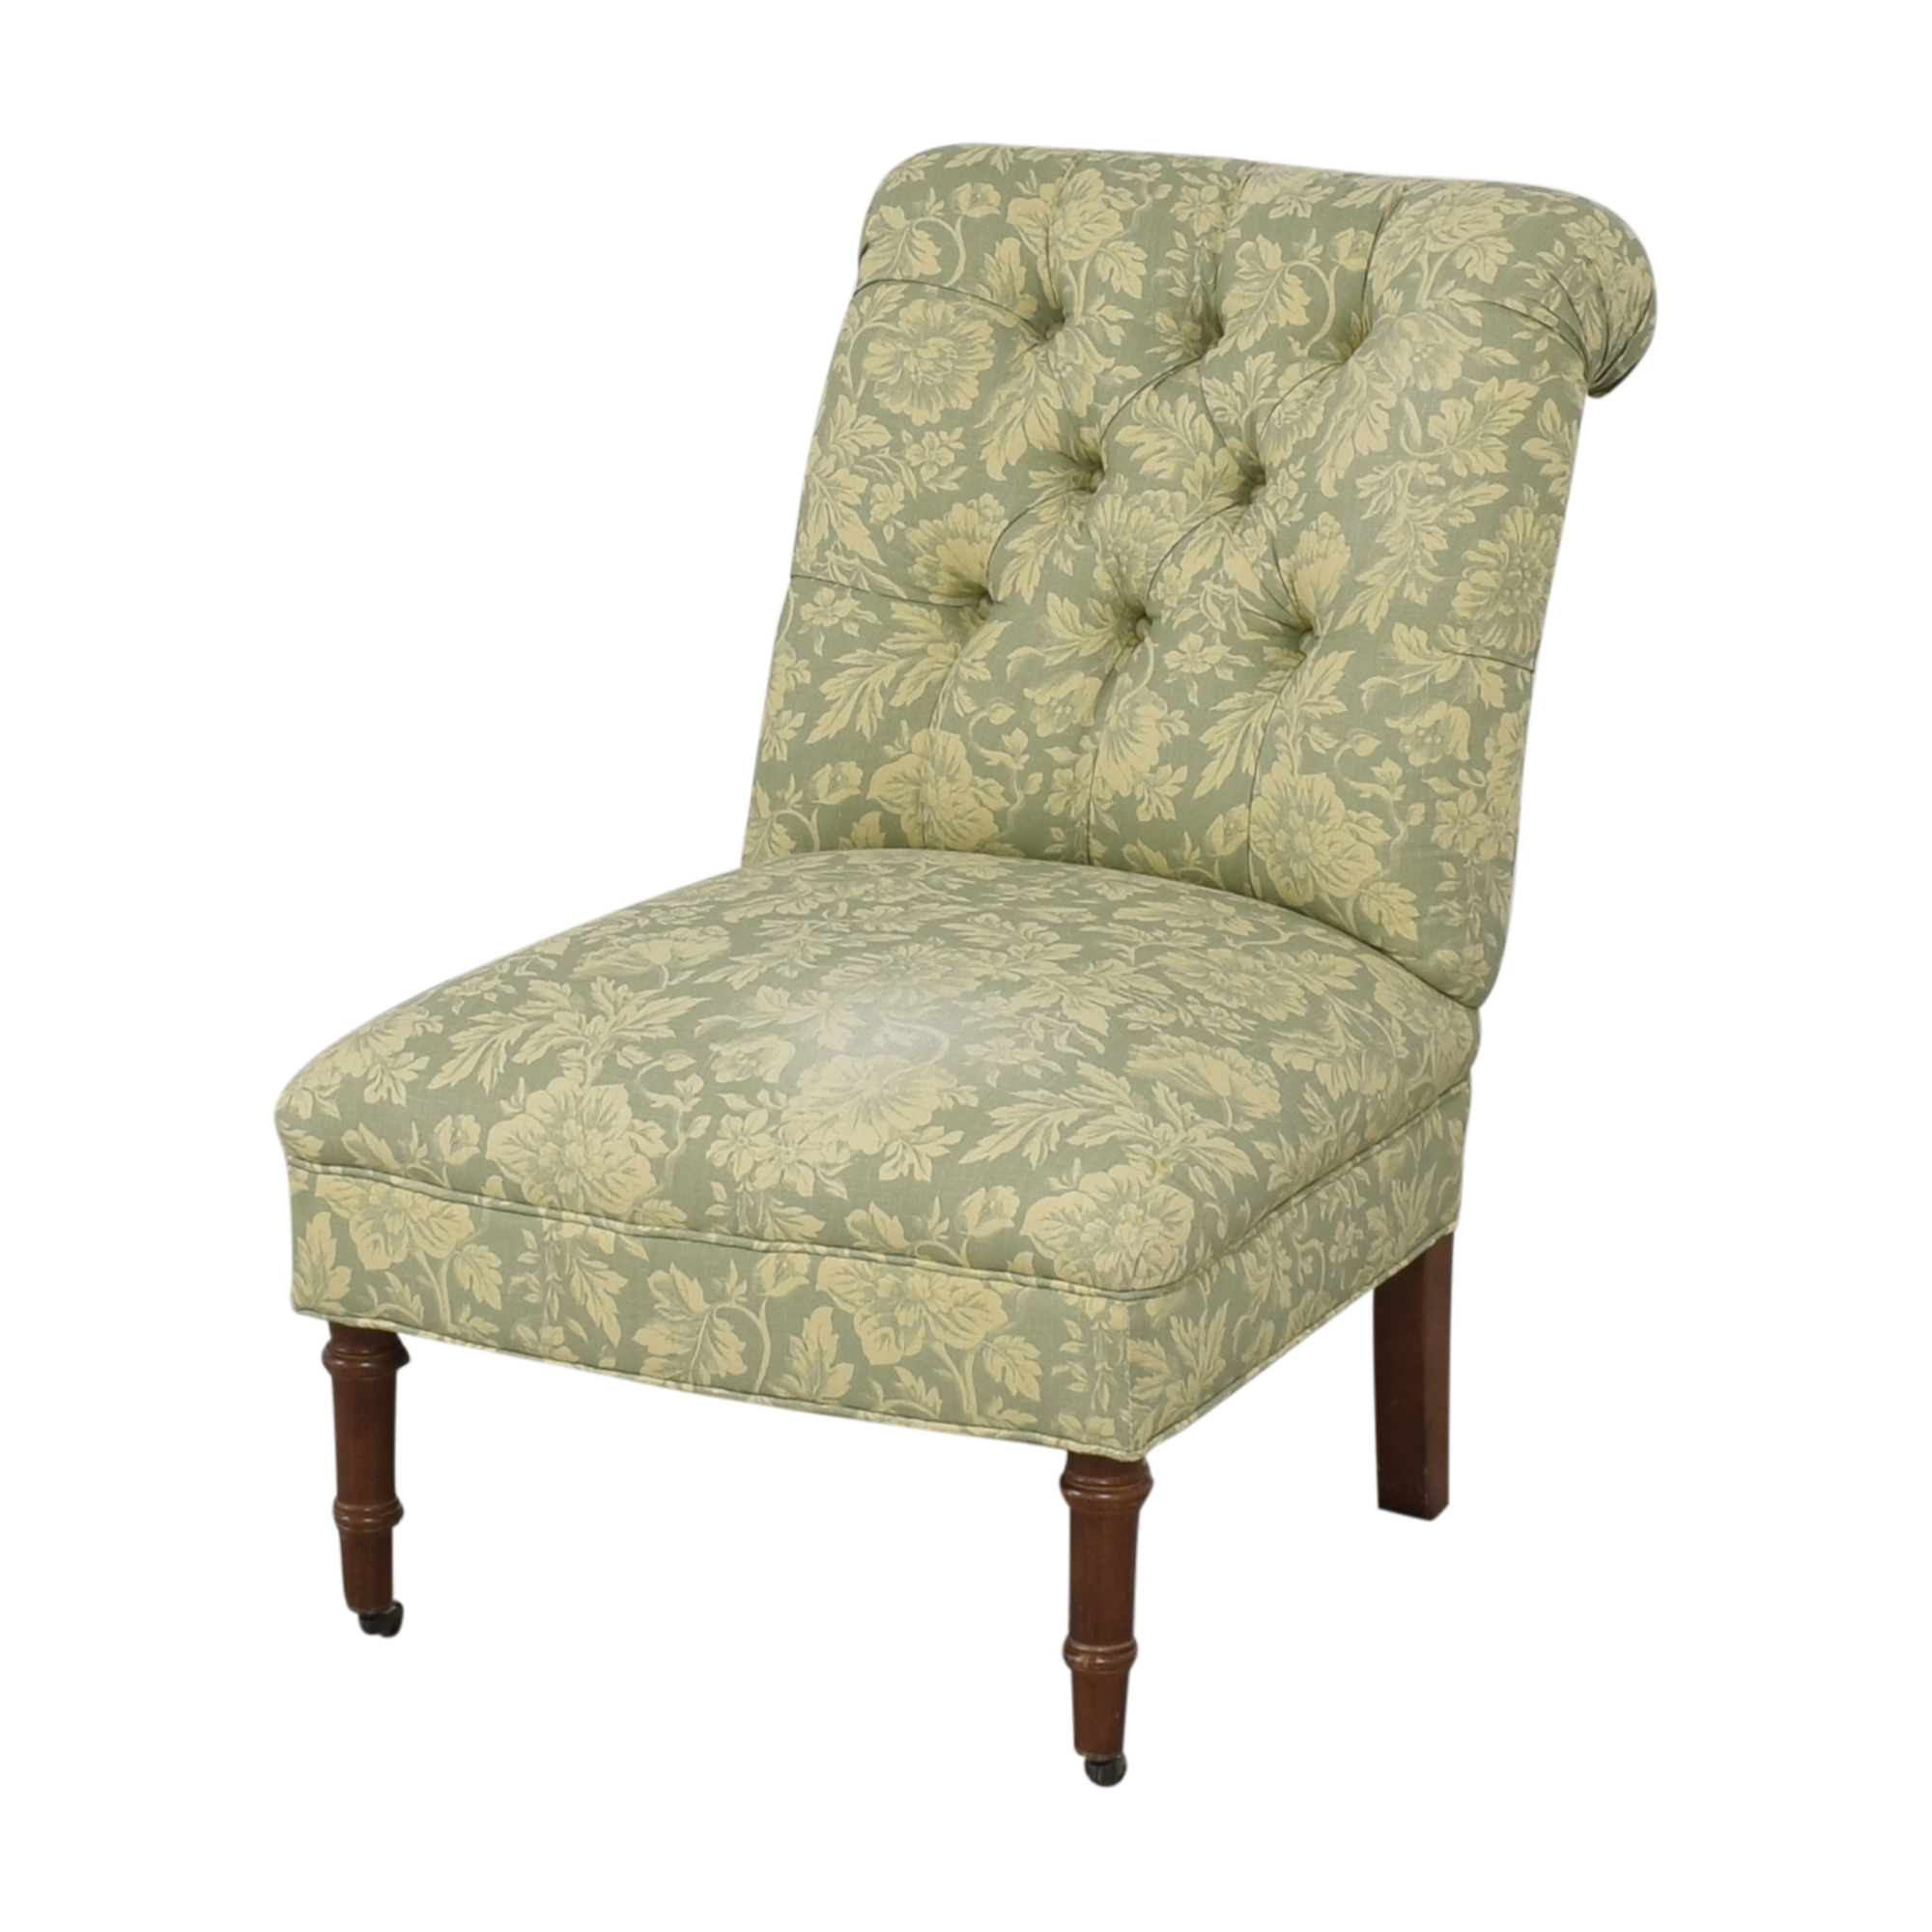 Lee Industries Tufted Armless Accent Chair / Chairs